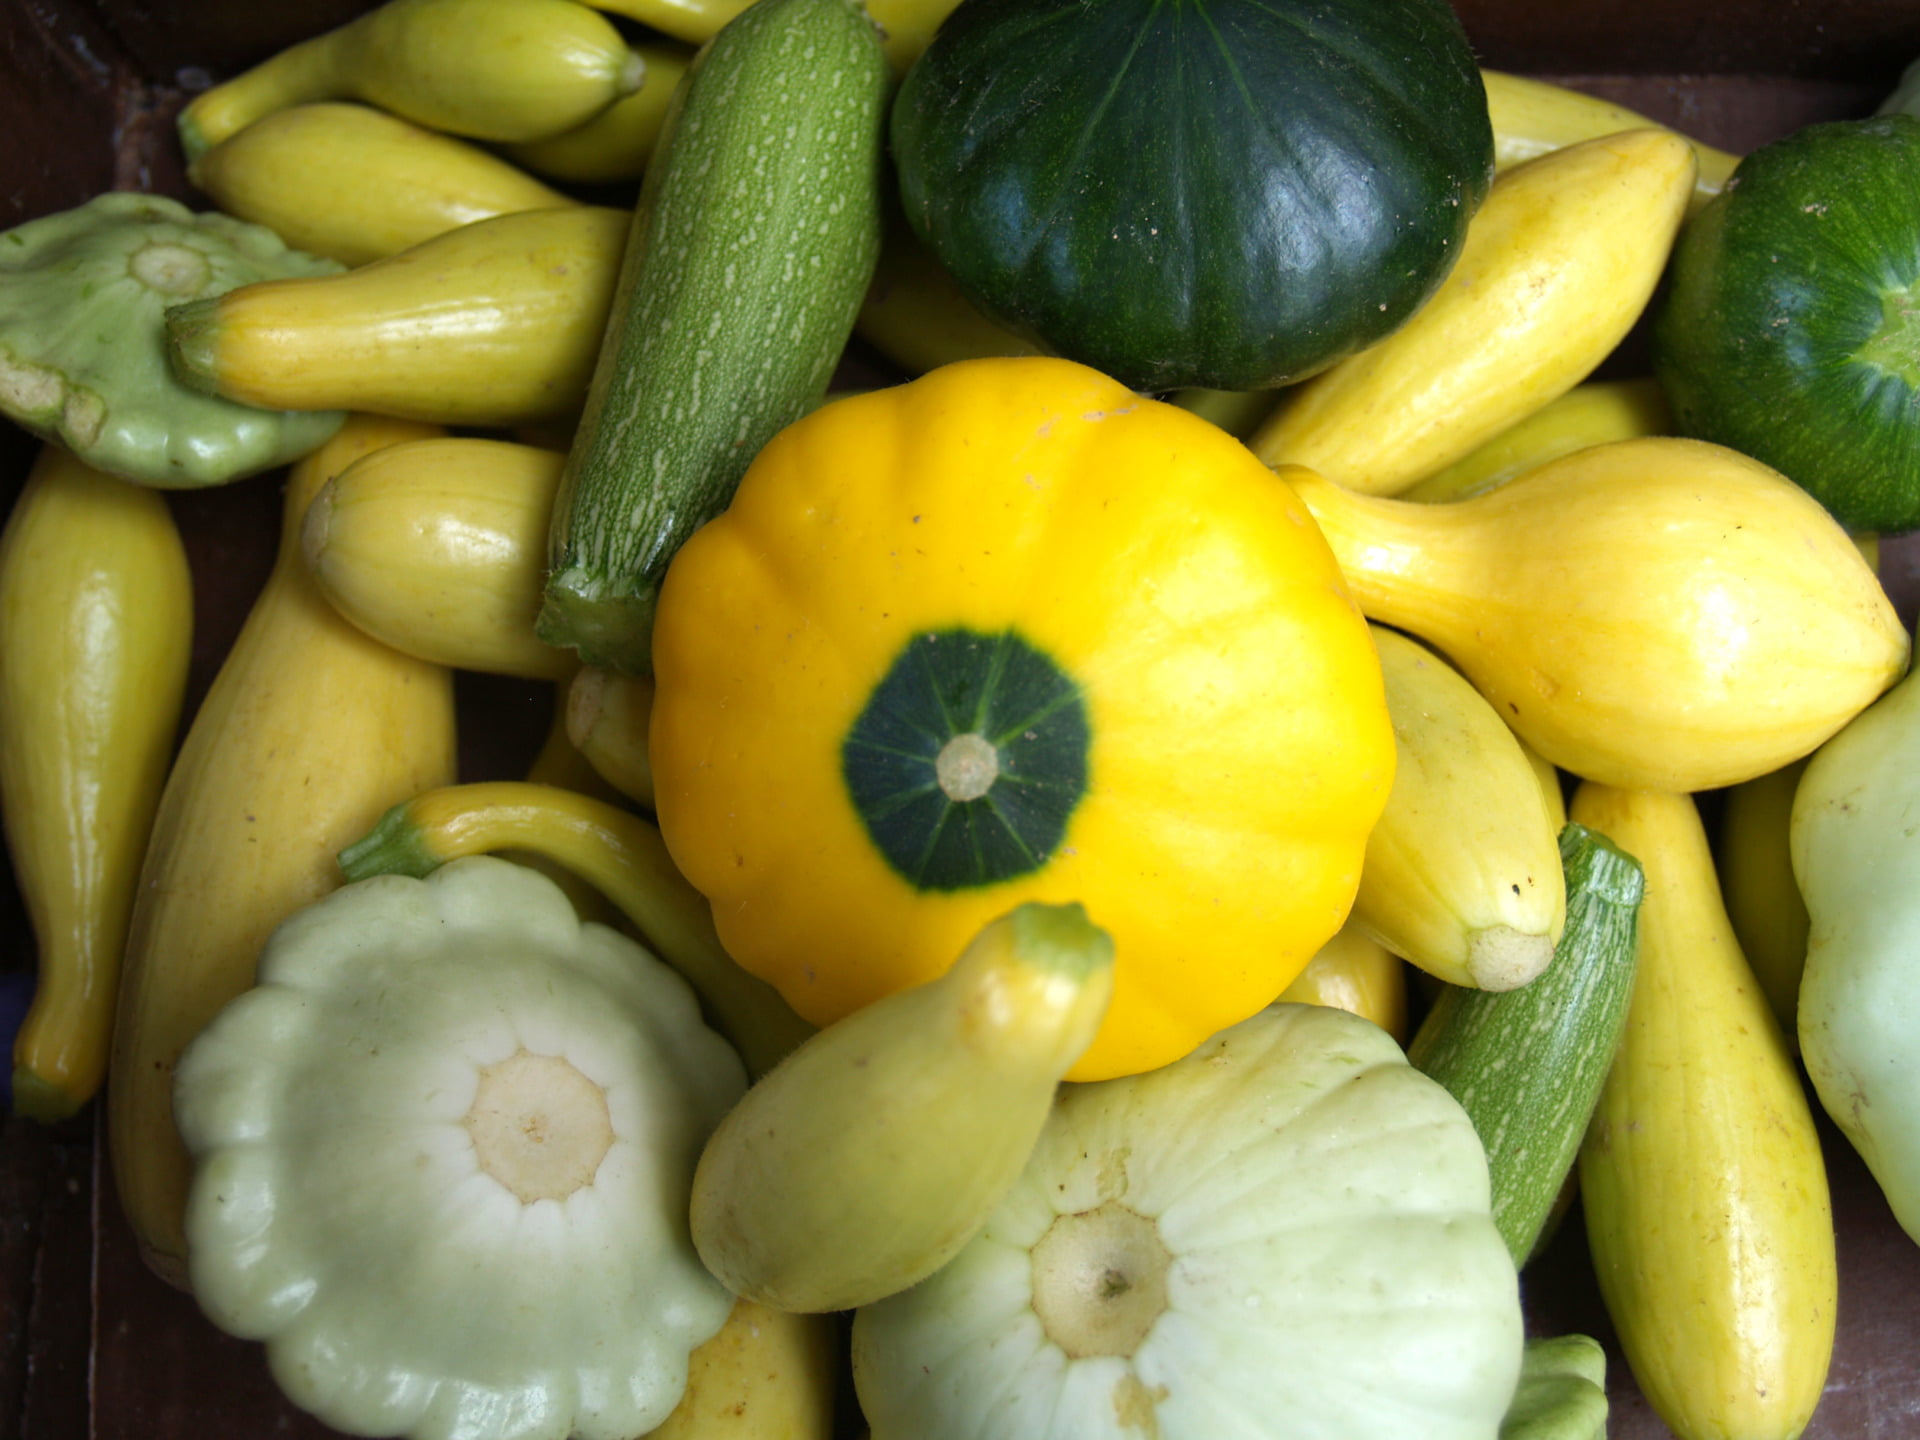 Squash is the Get Local vegetable for June